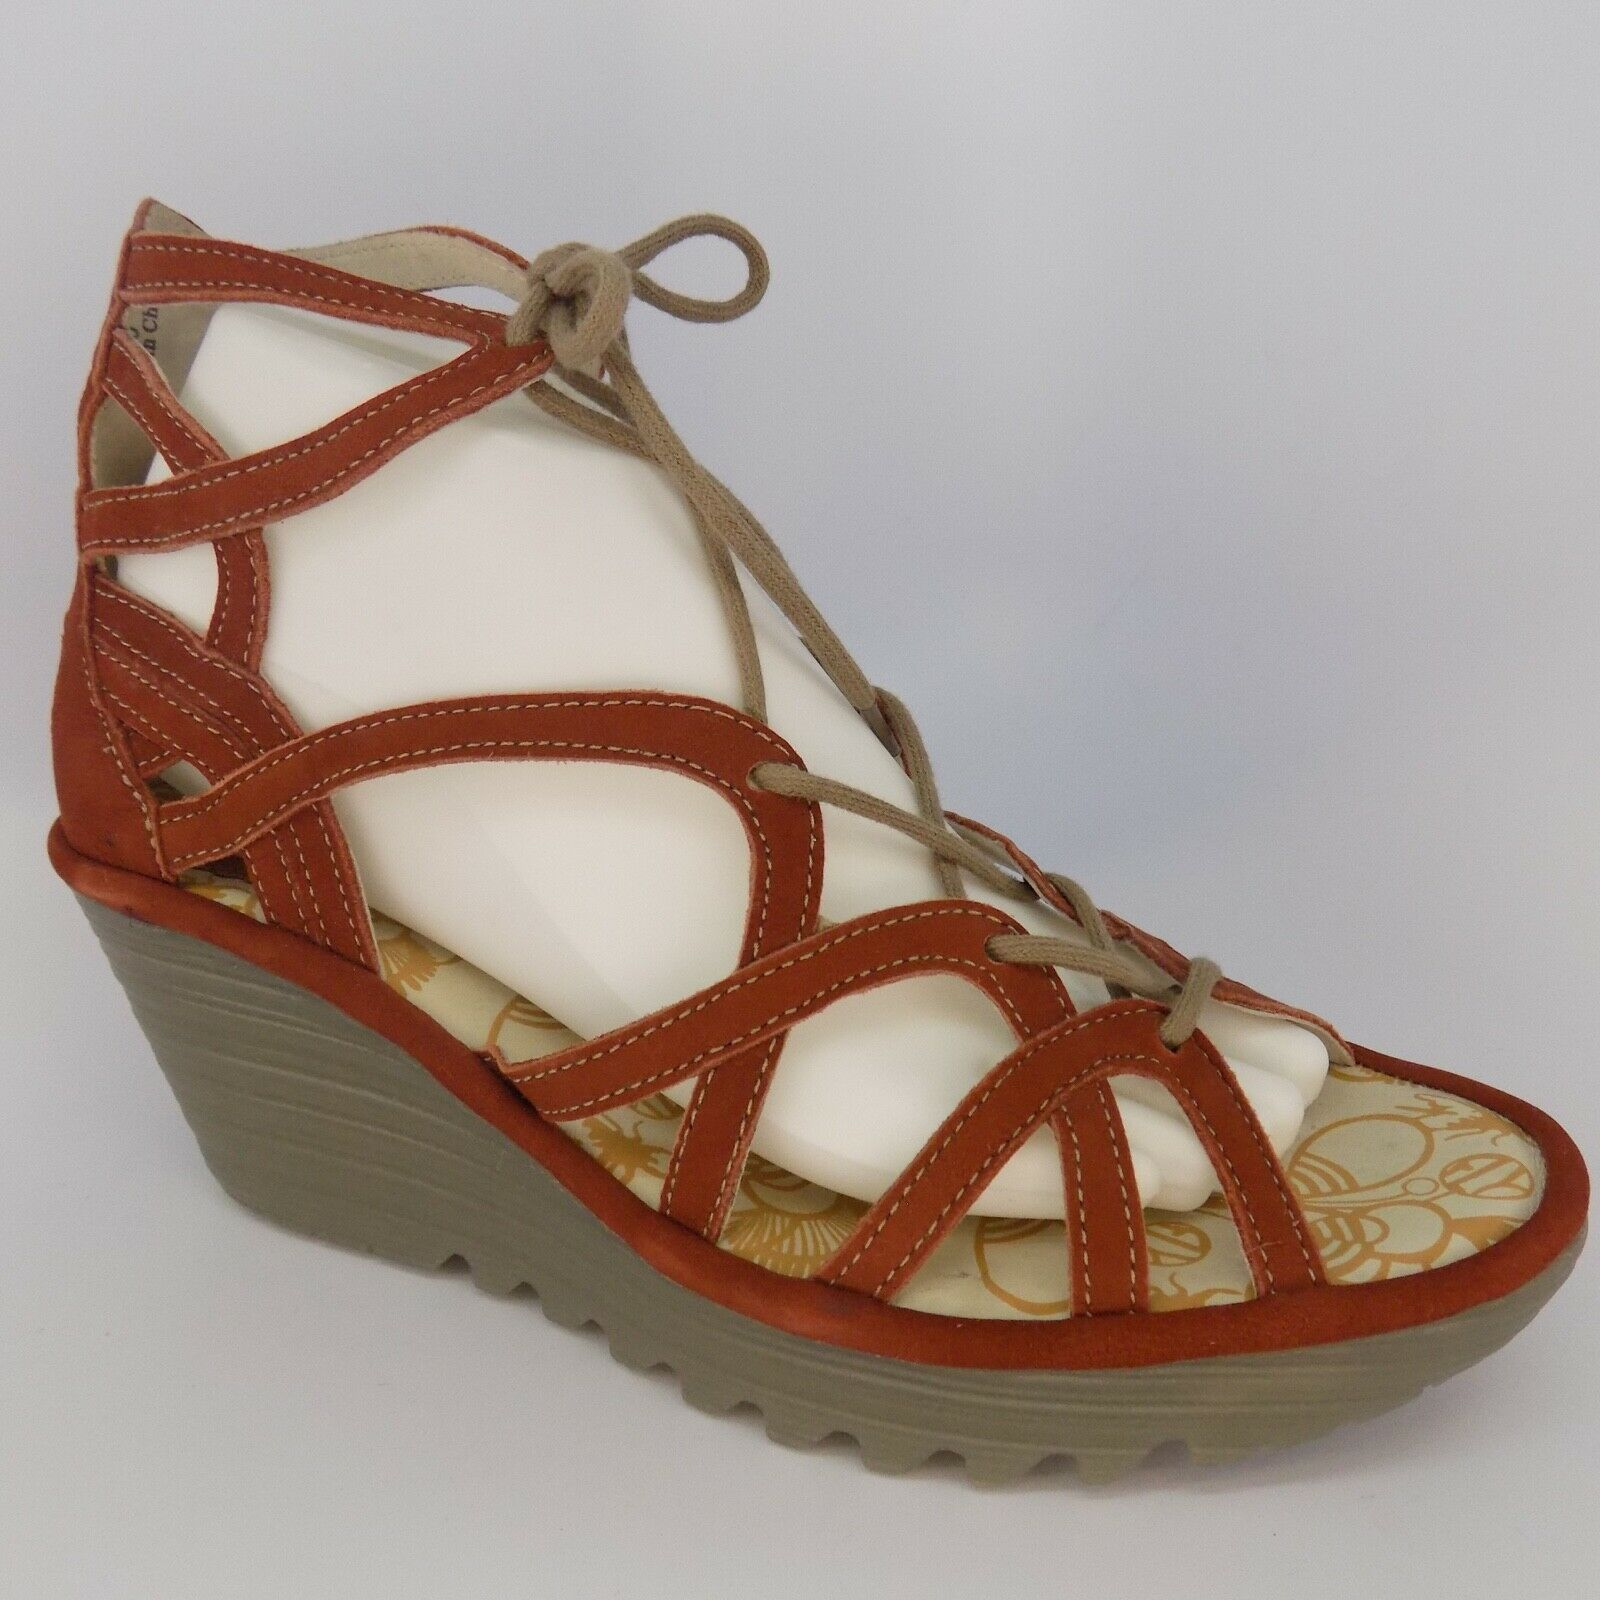 FLY LONDON Yuke Lace-Up Wedge Women Sandals Size 9-9.5 EU 40 AL5183